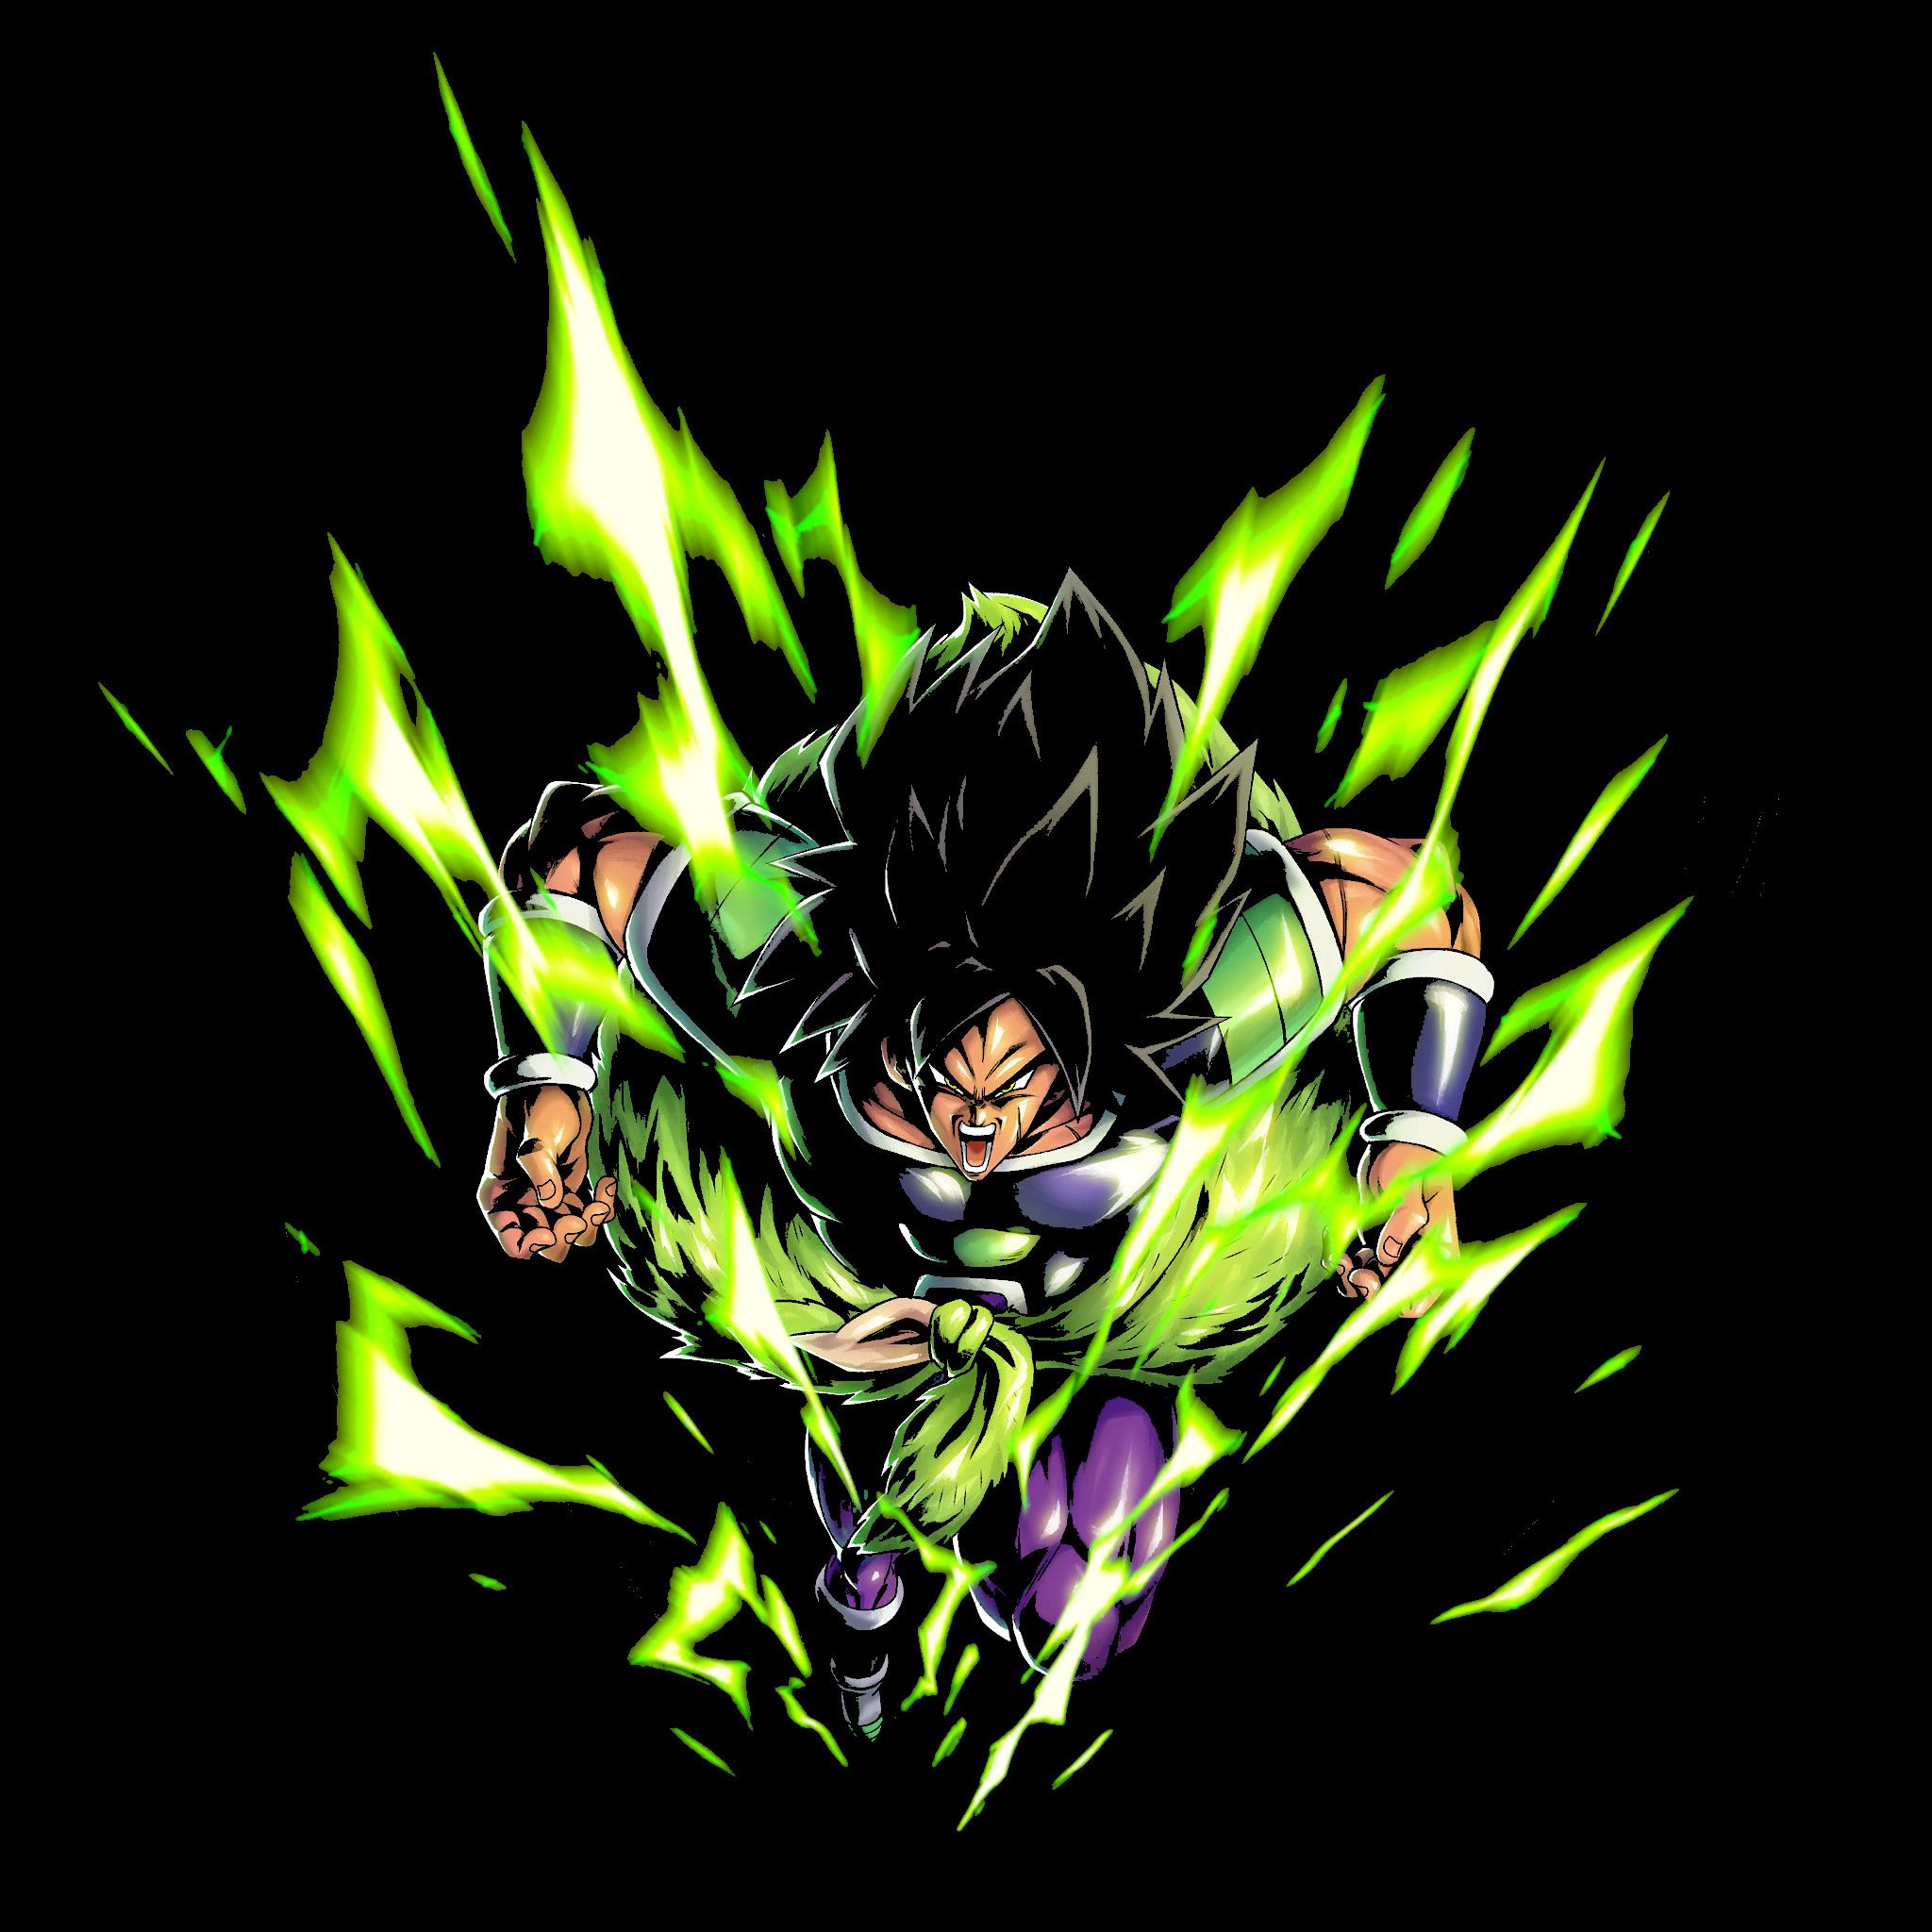 Best Of Broly Fury Amoled Wallpaper Dragonballlegends Cool Wallpapers For Phones Wallpaper Dragon Warrior